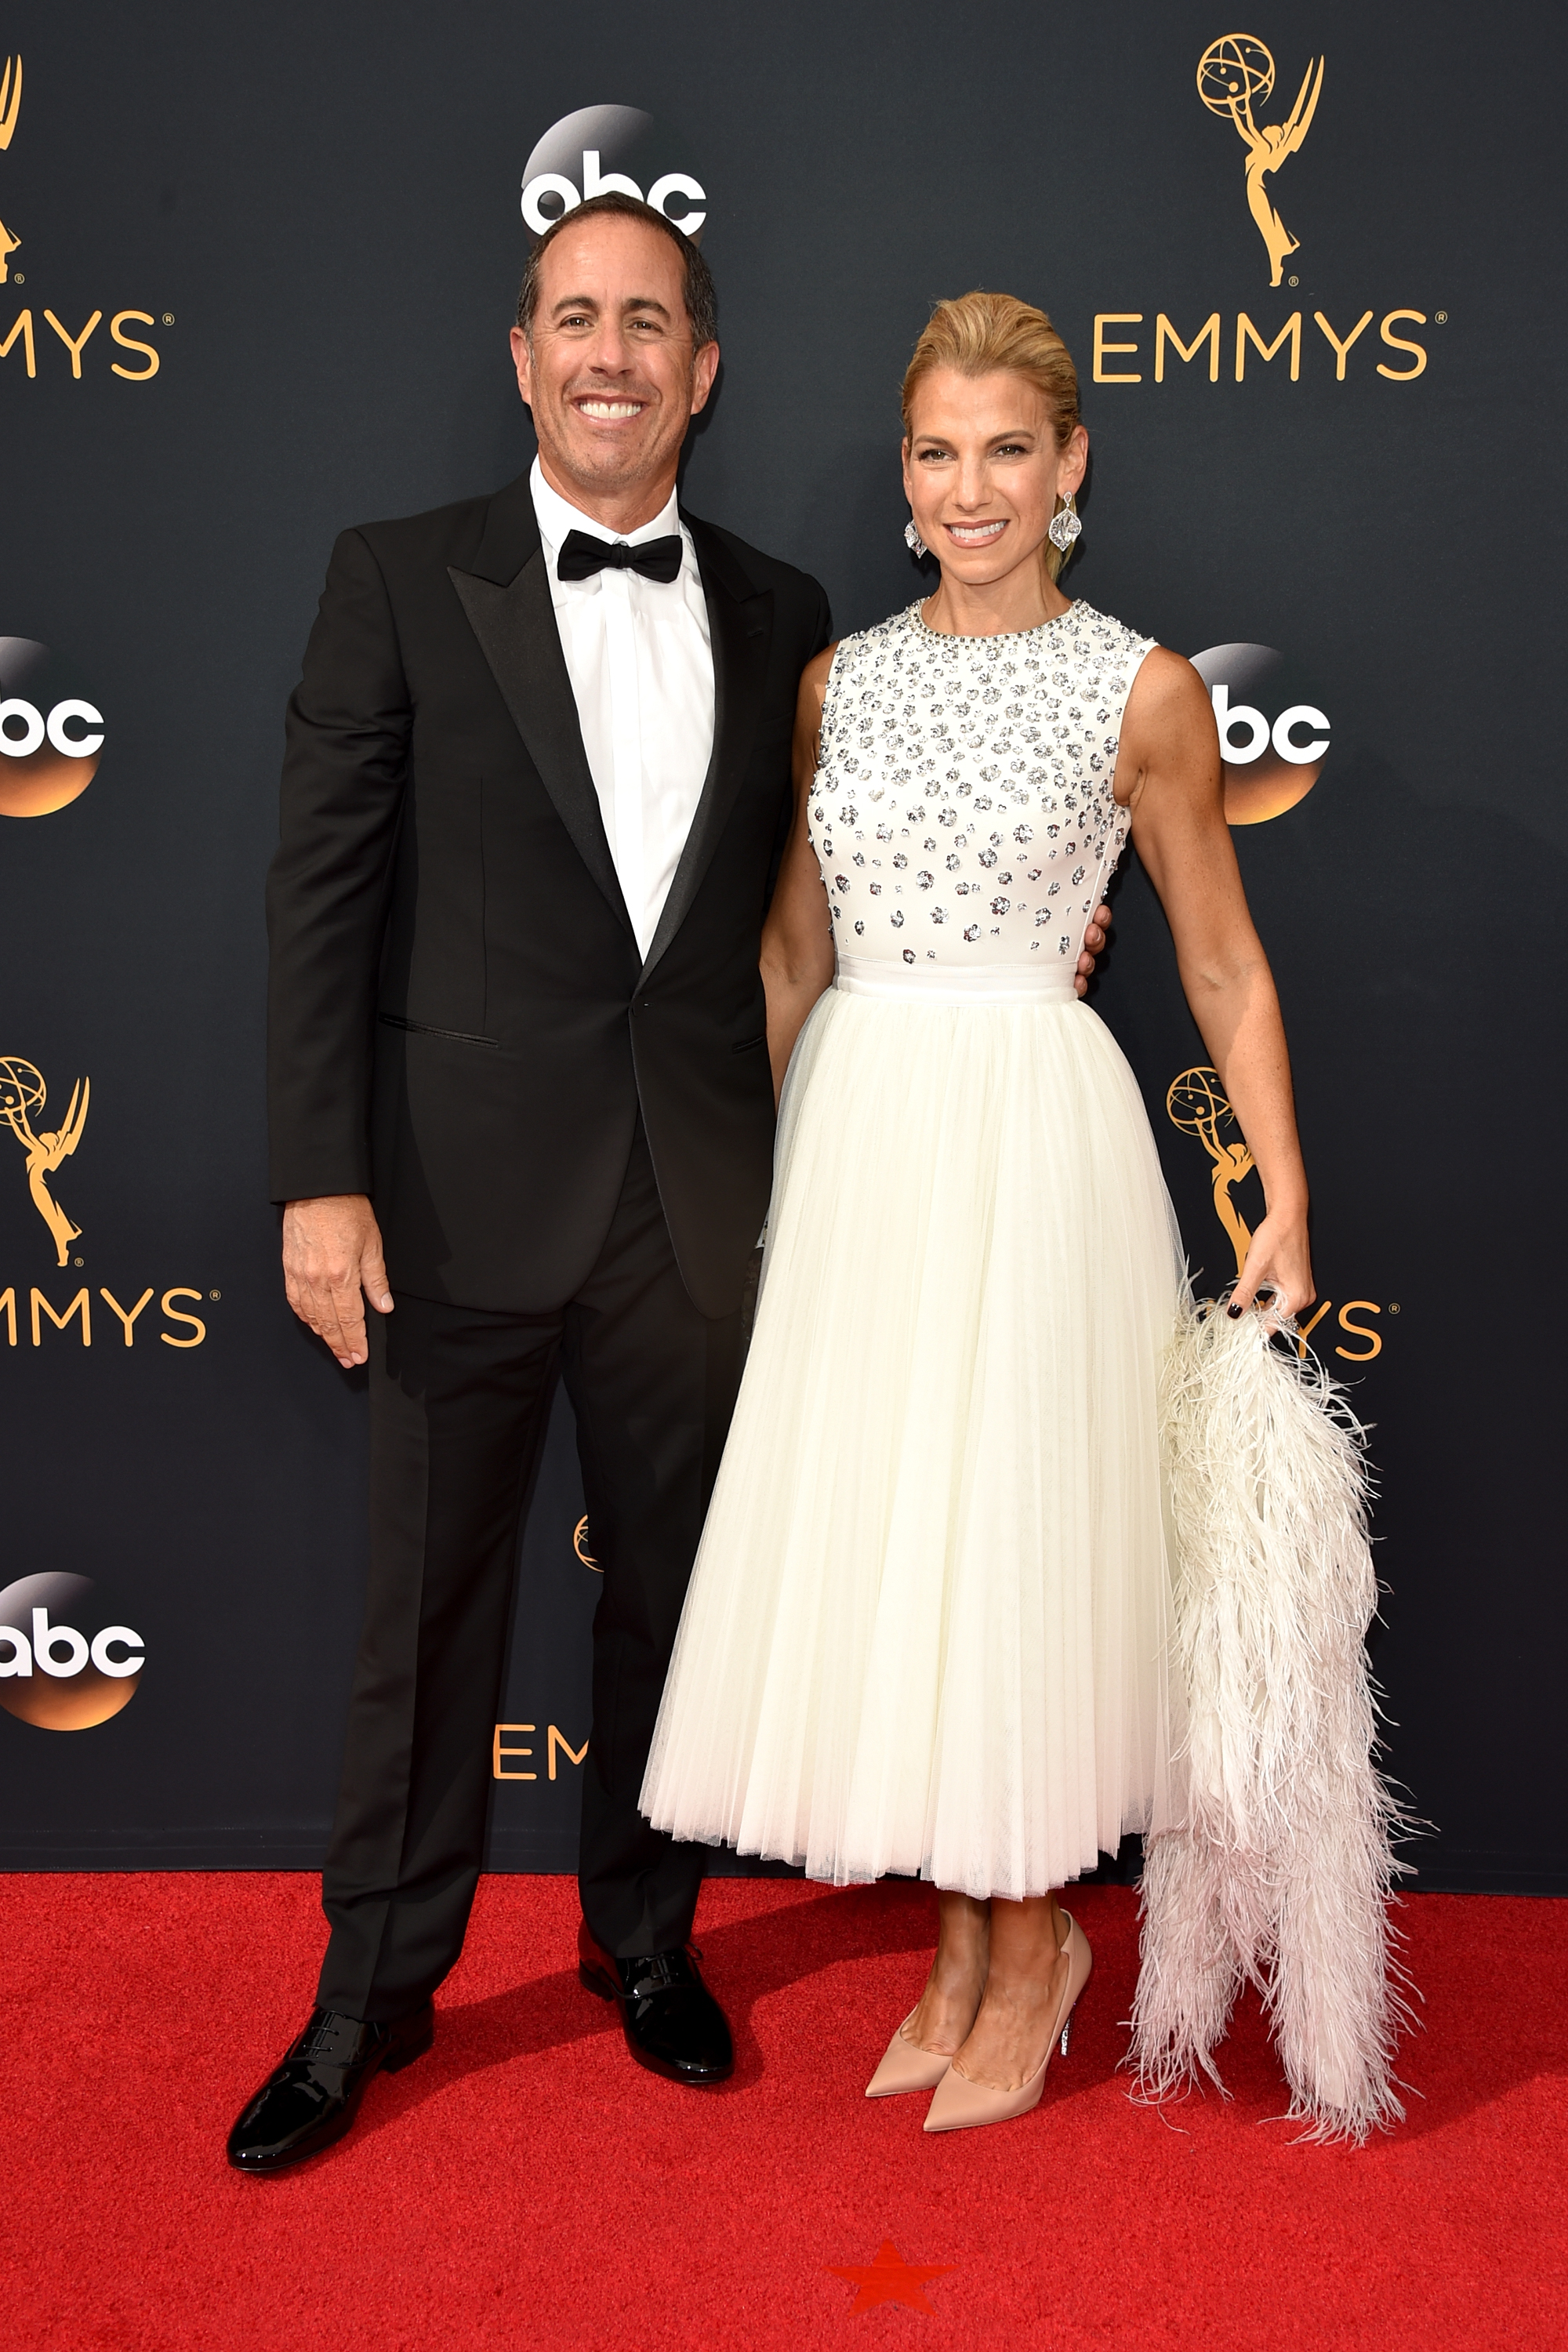 Jerry Seinfeld and Jessica Seinfeld arrive at the 68th Annual Primetime Emmy Awards at Microsoft Theater on Sept. 18, 2016 in Los Angeles.